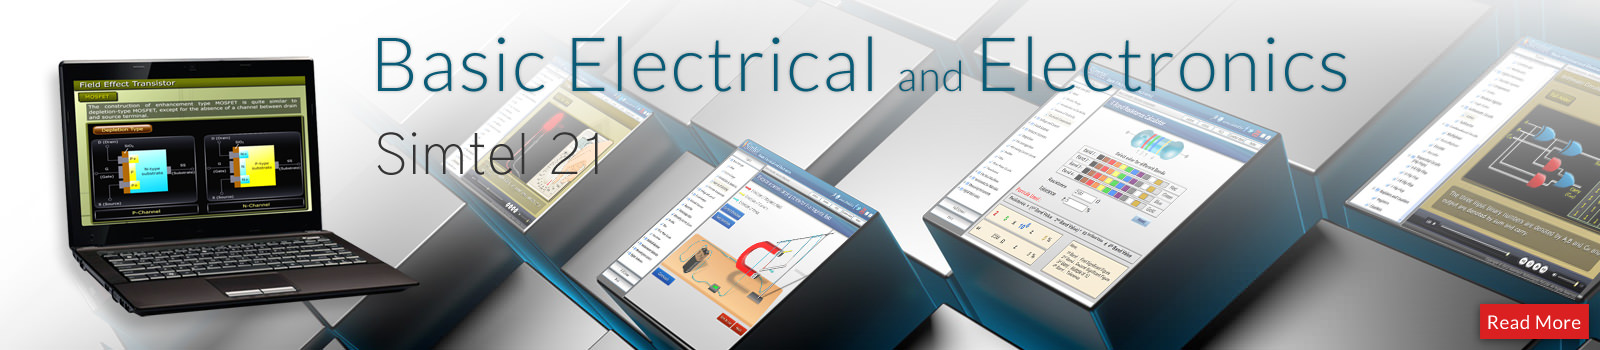 Basic Electrical and Electronics